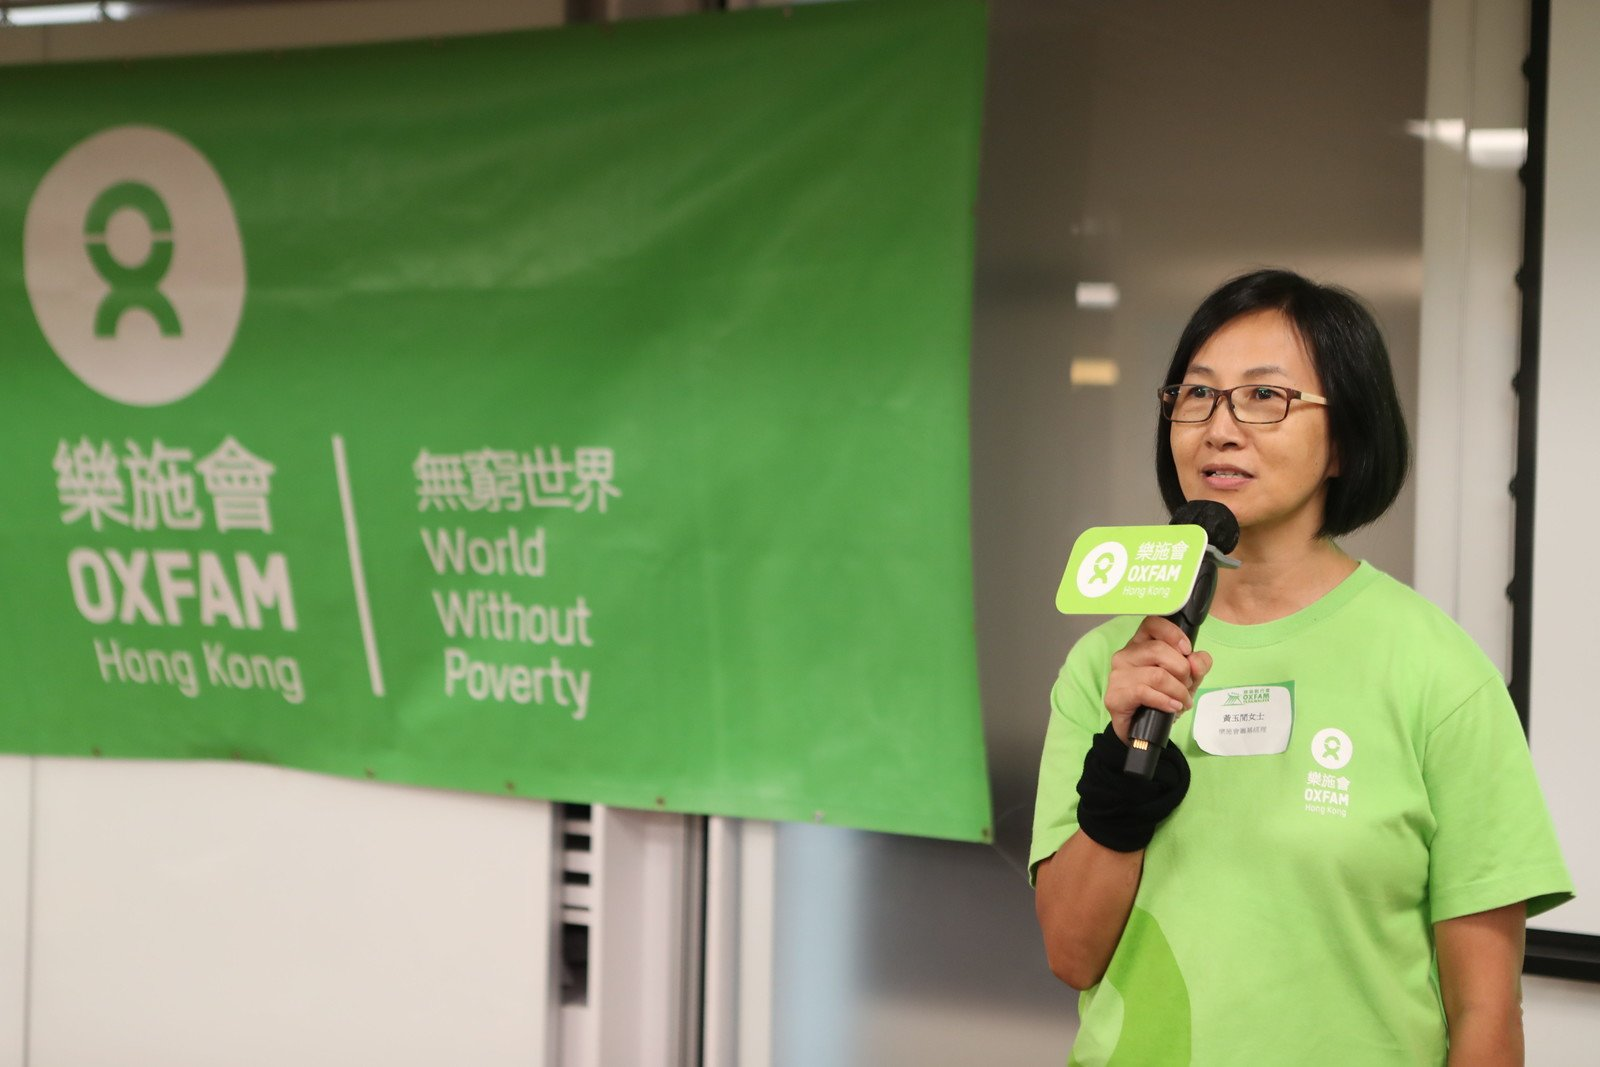 Brenda Wong, Fundraising Manager (Events) of Oxfam Hong Kong, introducing the new finish point and route this year.